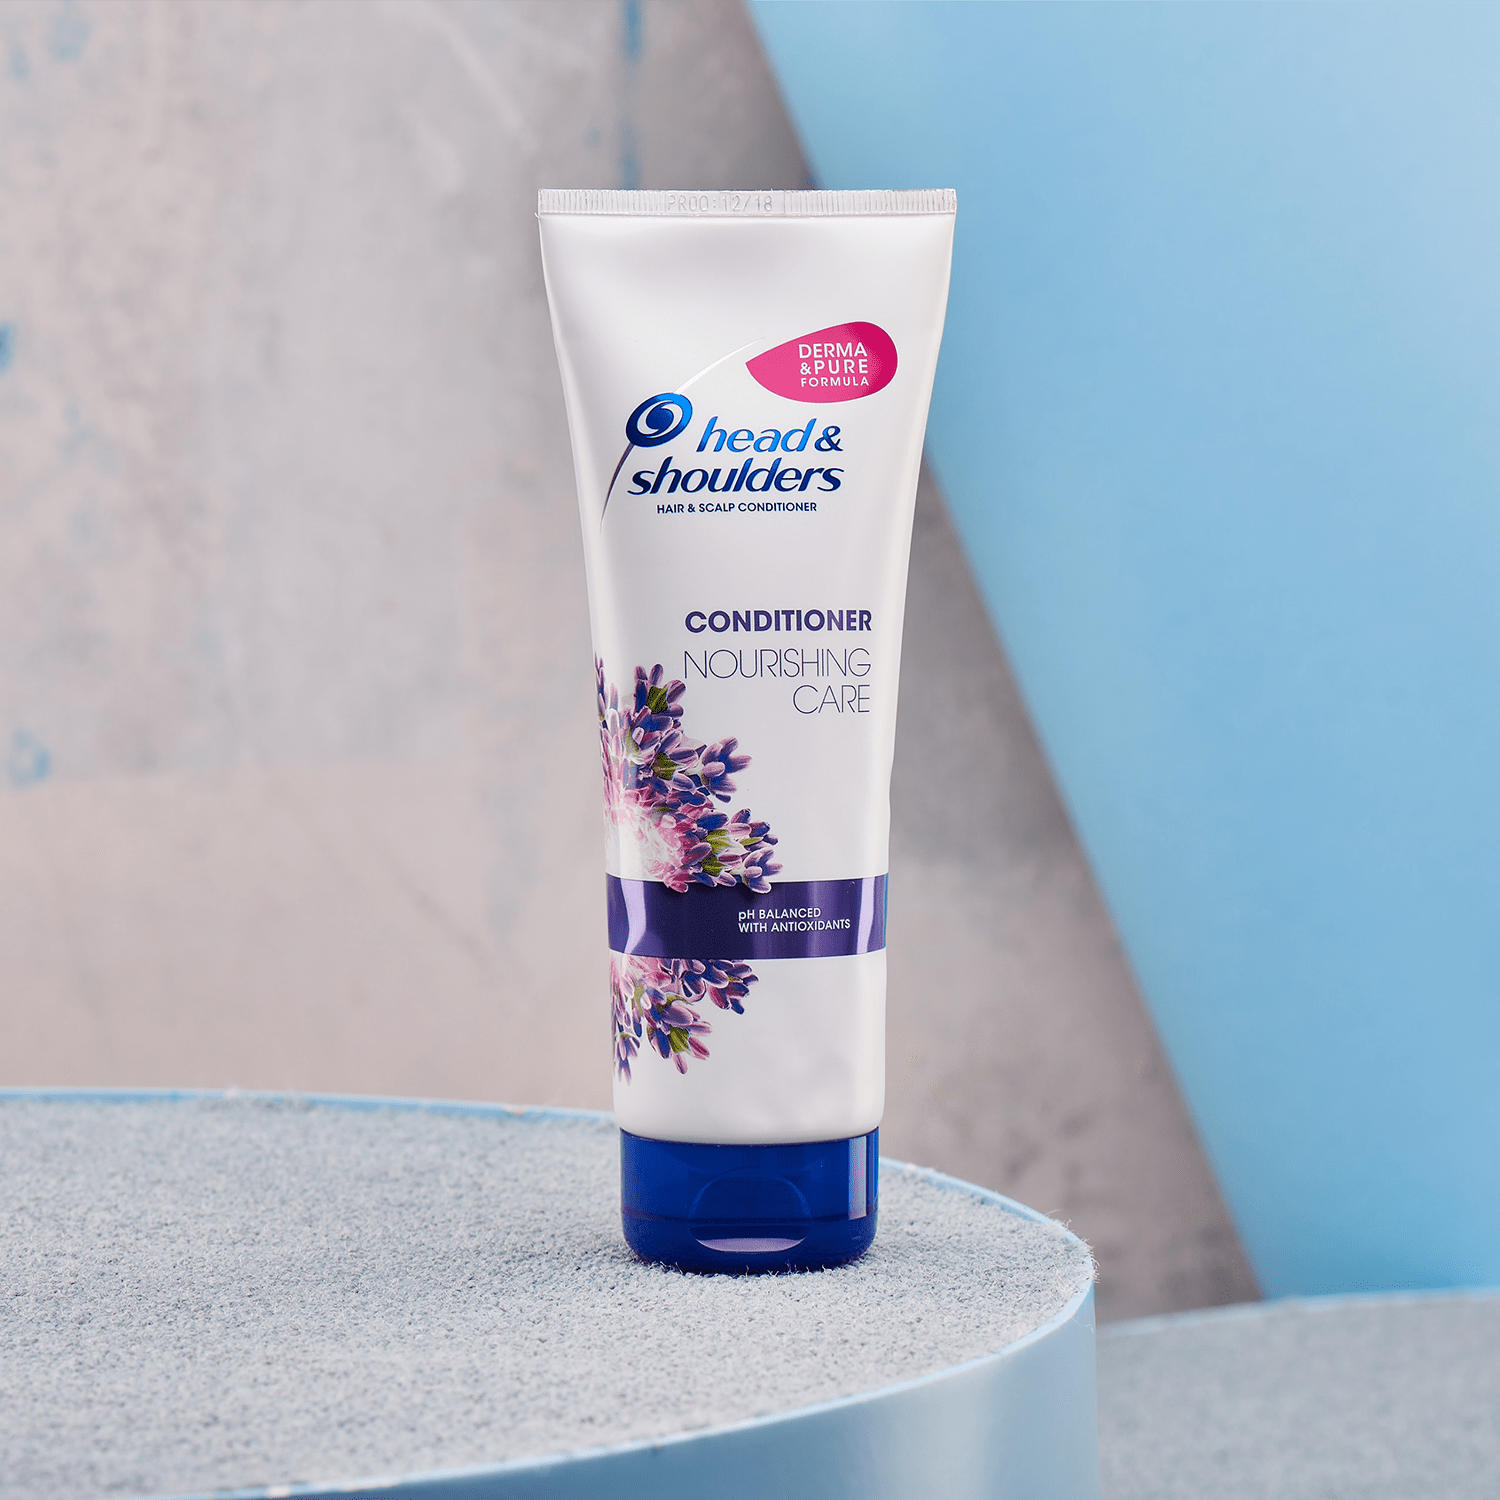 Balsam H&S NOURISHING CARE matreata tratament matreata antimatreata tratament antimatreata scapa de materana cum scapi de matreata cum scap de matreata balsam antimatreata balsam matreata cum scapam de matreata par frumos Head & Shoulders